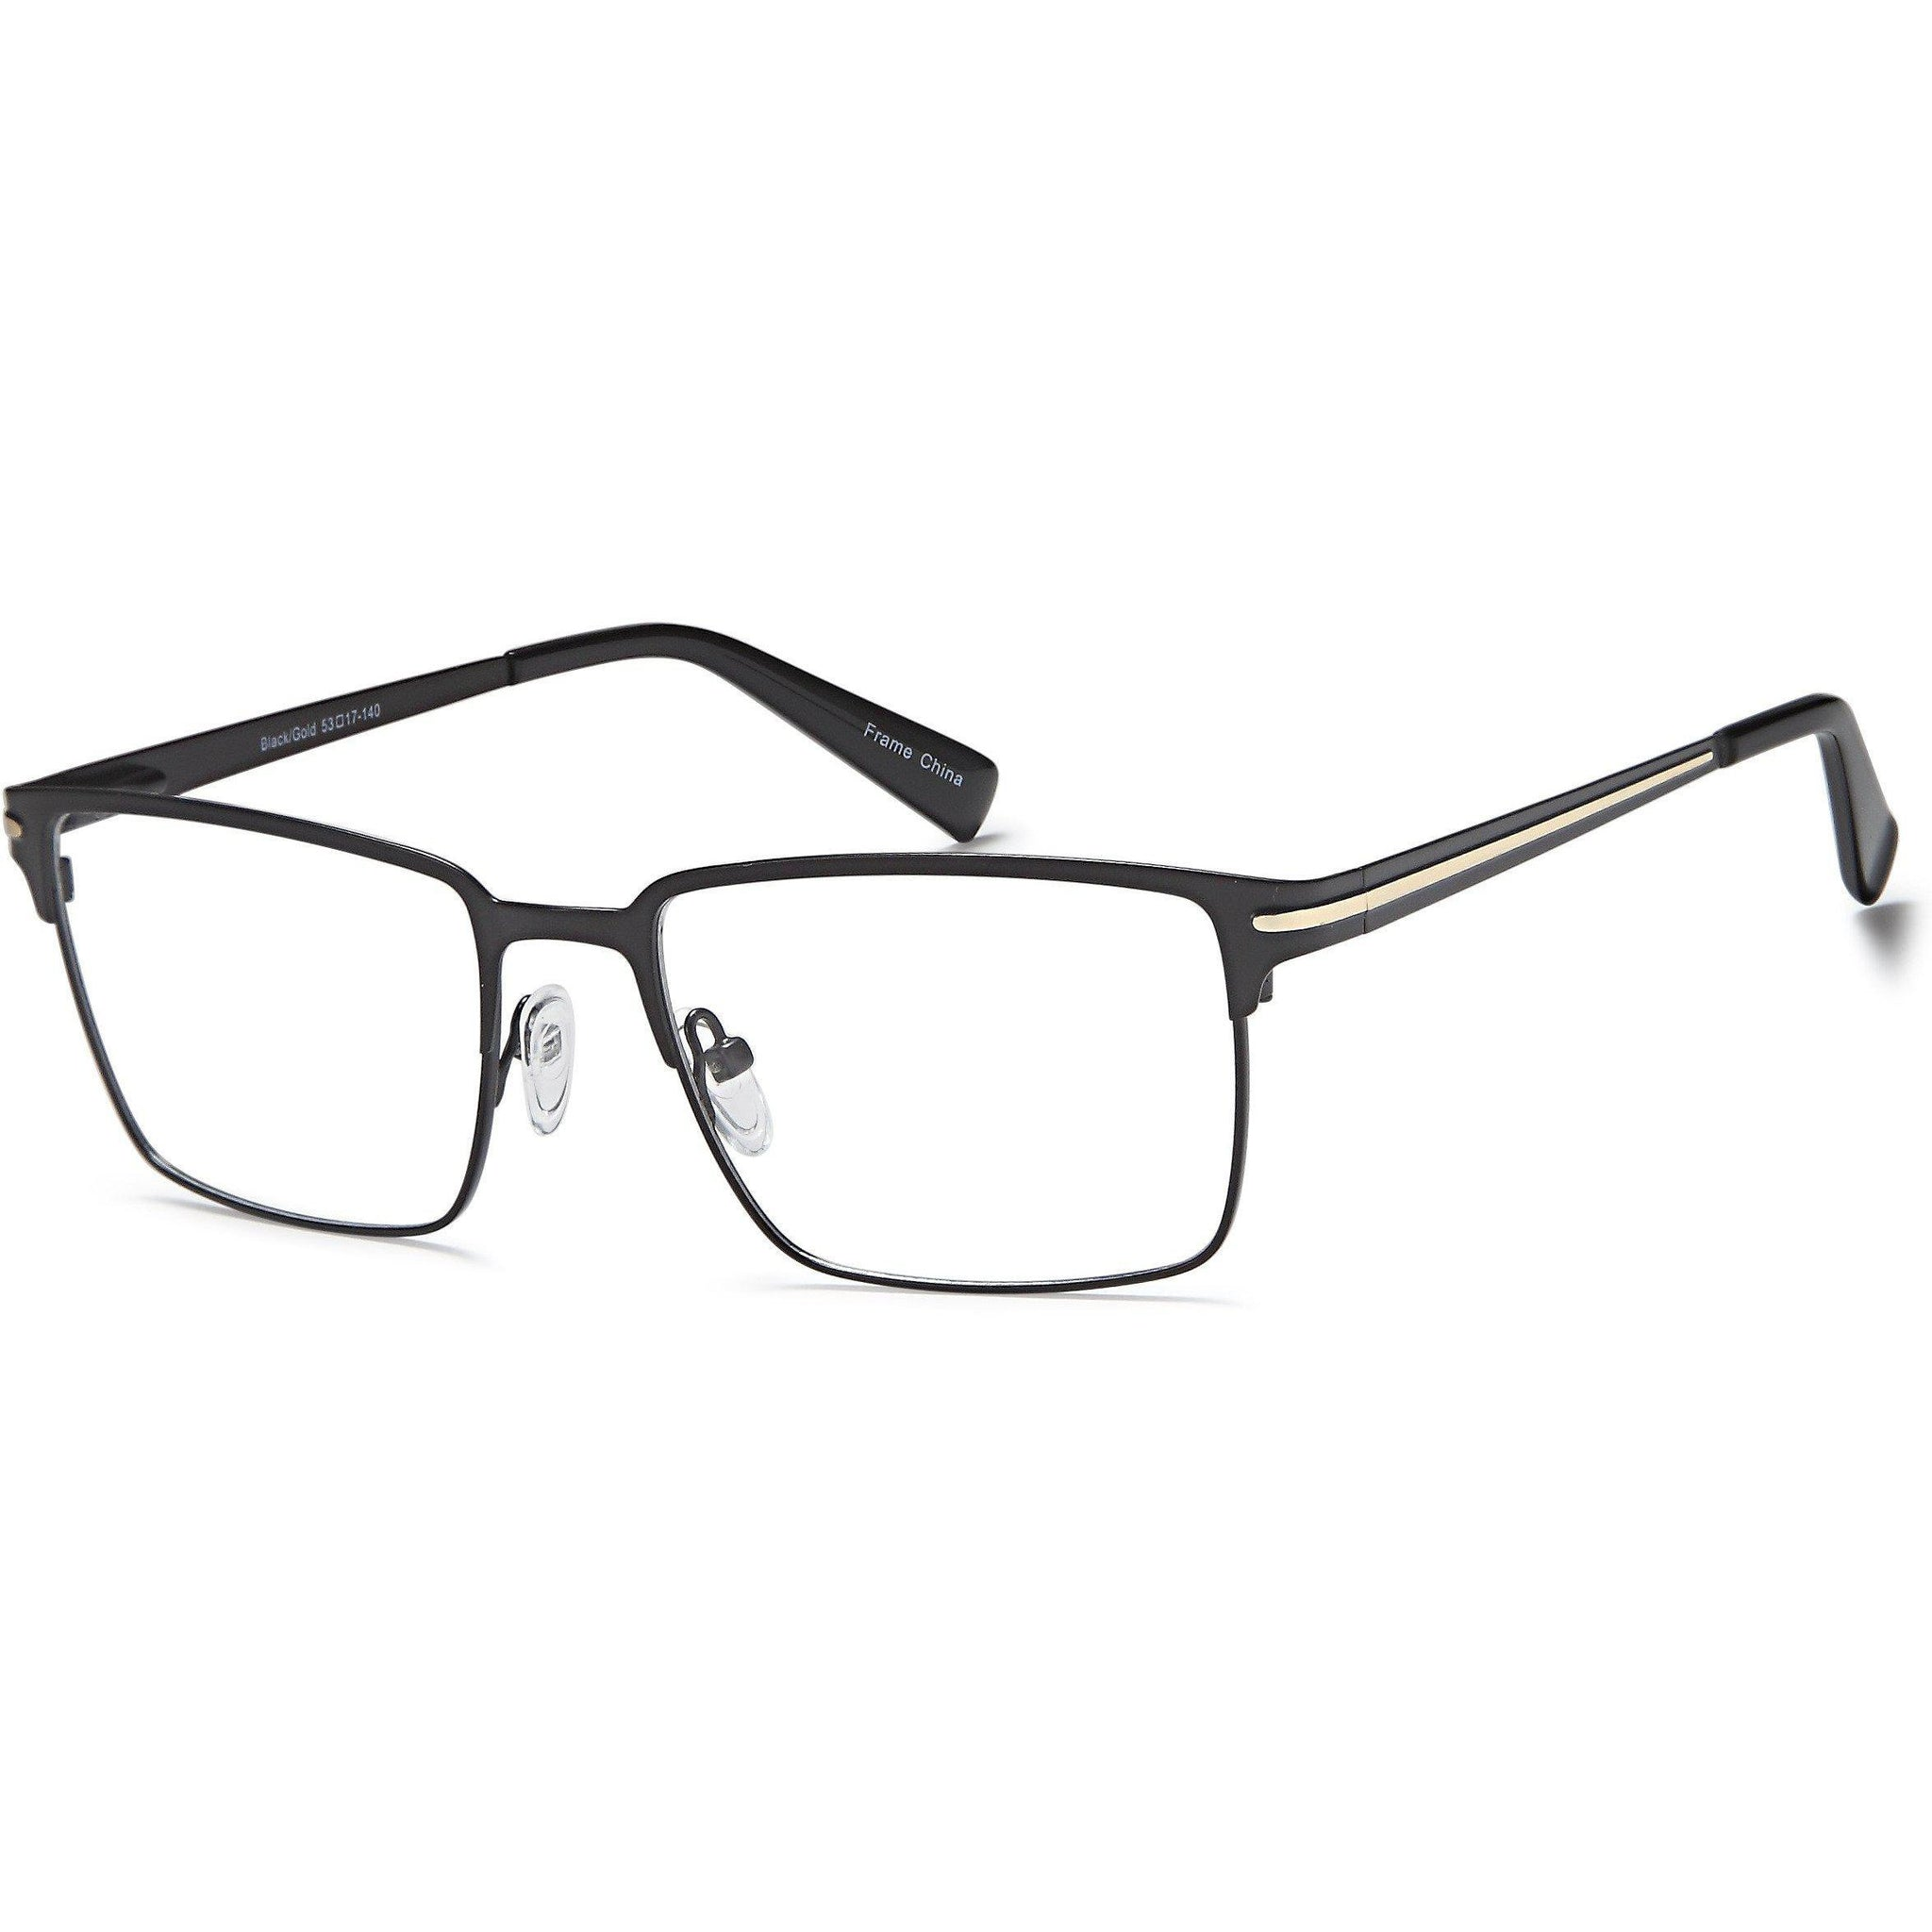 Di Caprio Prescription Glasses DC 175 Eyeglasses Frame - timetoshade